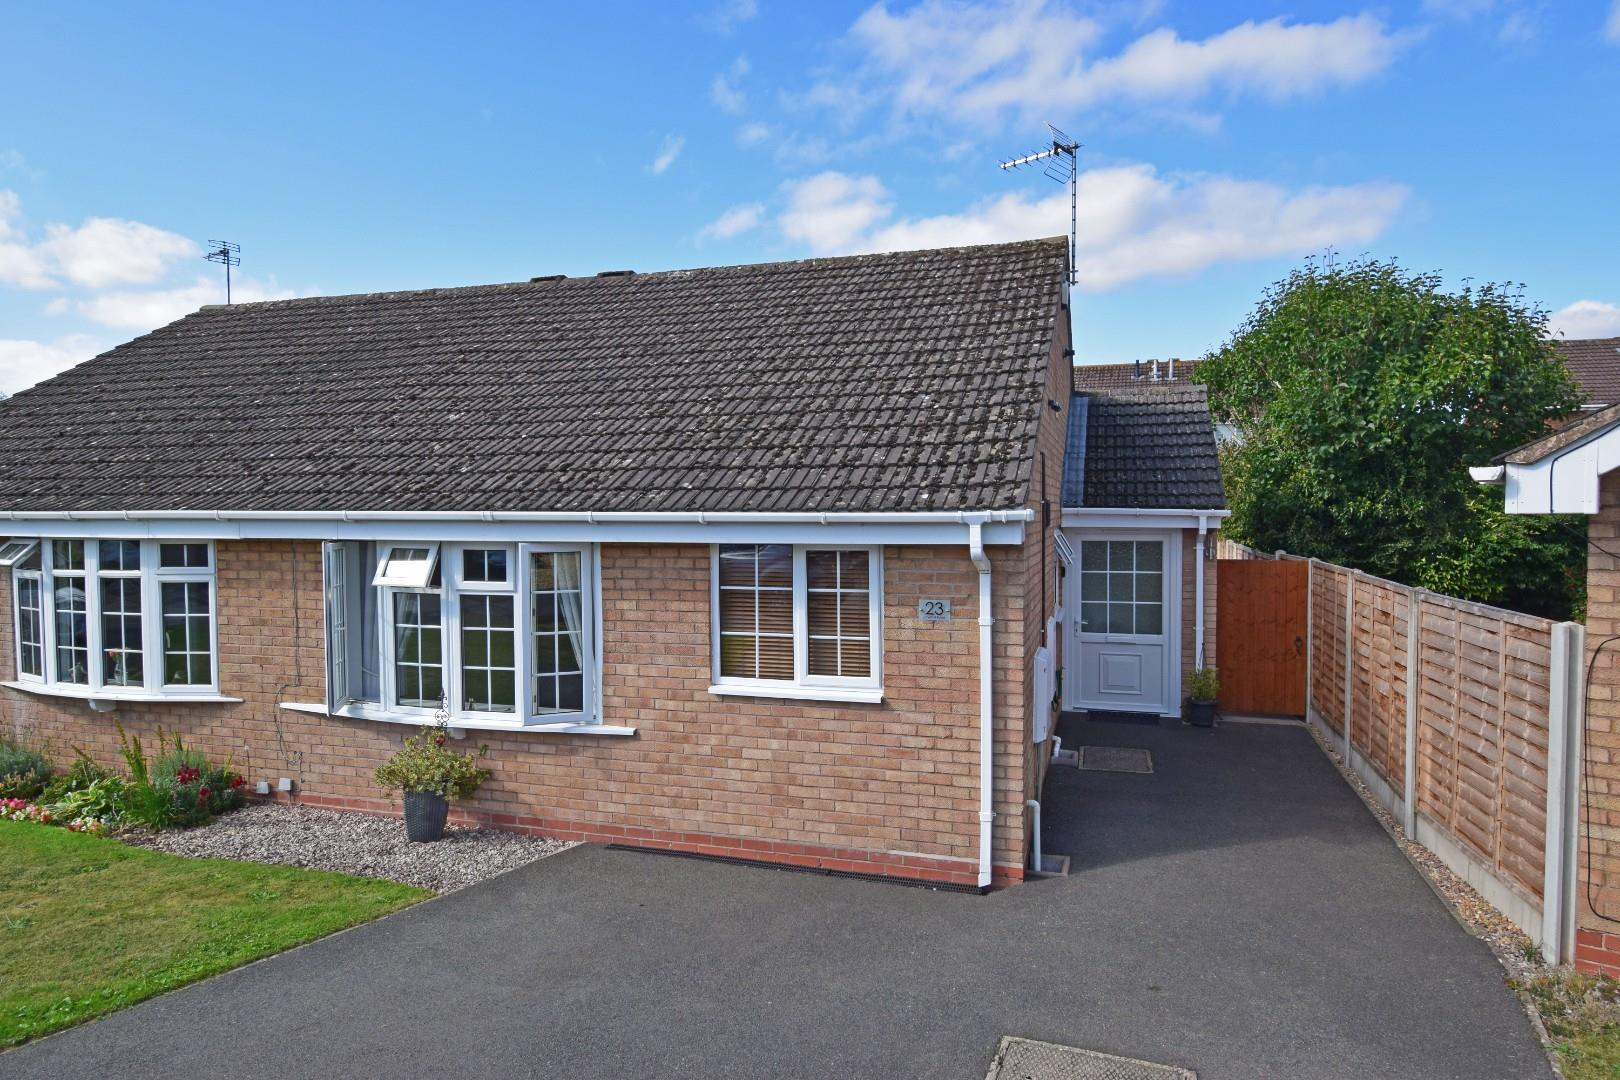 23 Clayhall Road, Droitwich, Worcestershire, WR9 7RT